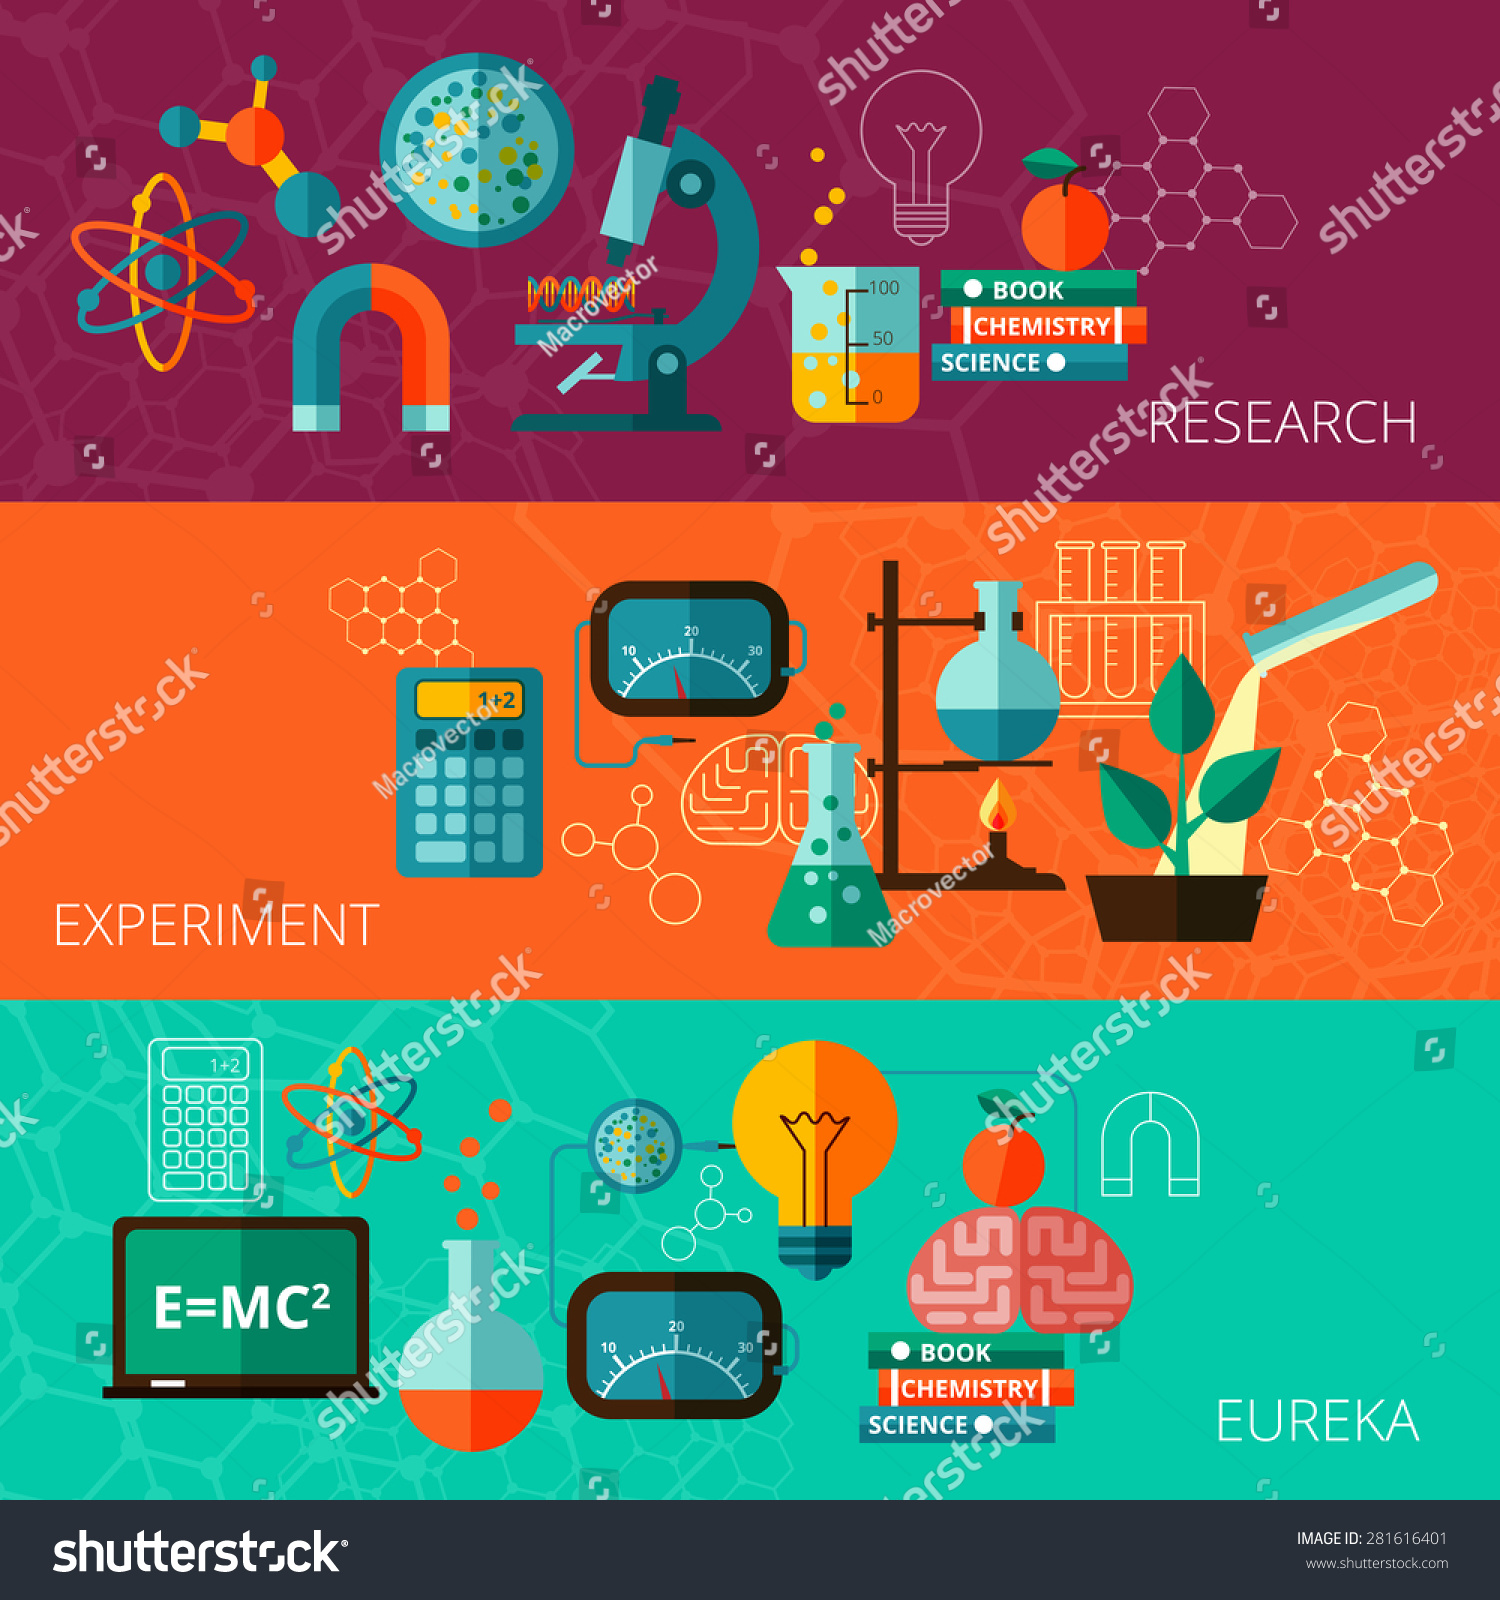 Chemistry physics scientific research experiment eureka stock vector 281616401 shutterstock for Physics planning and design experiments